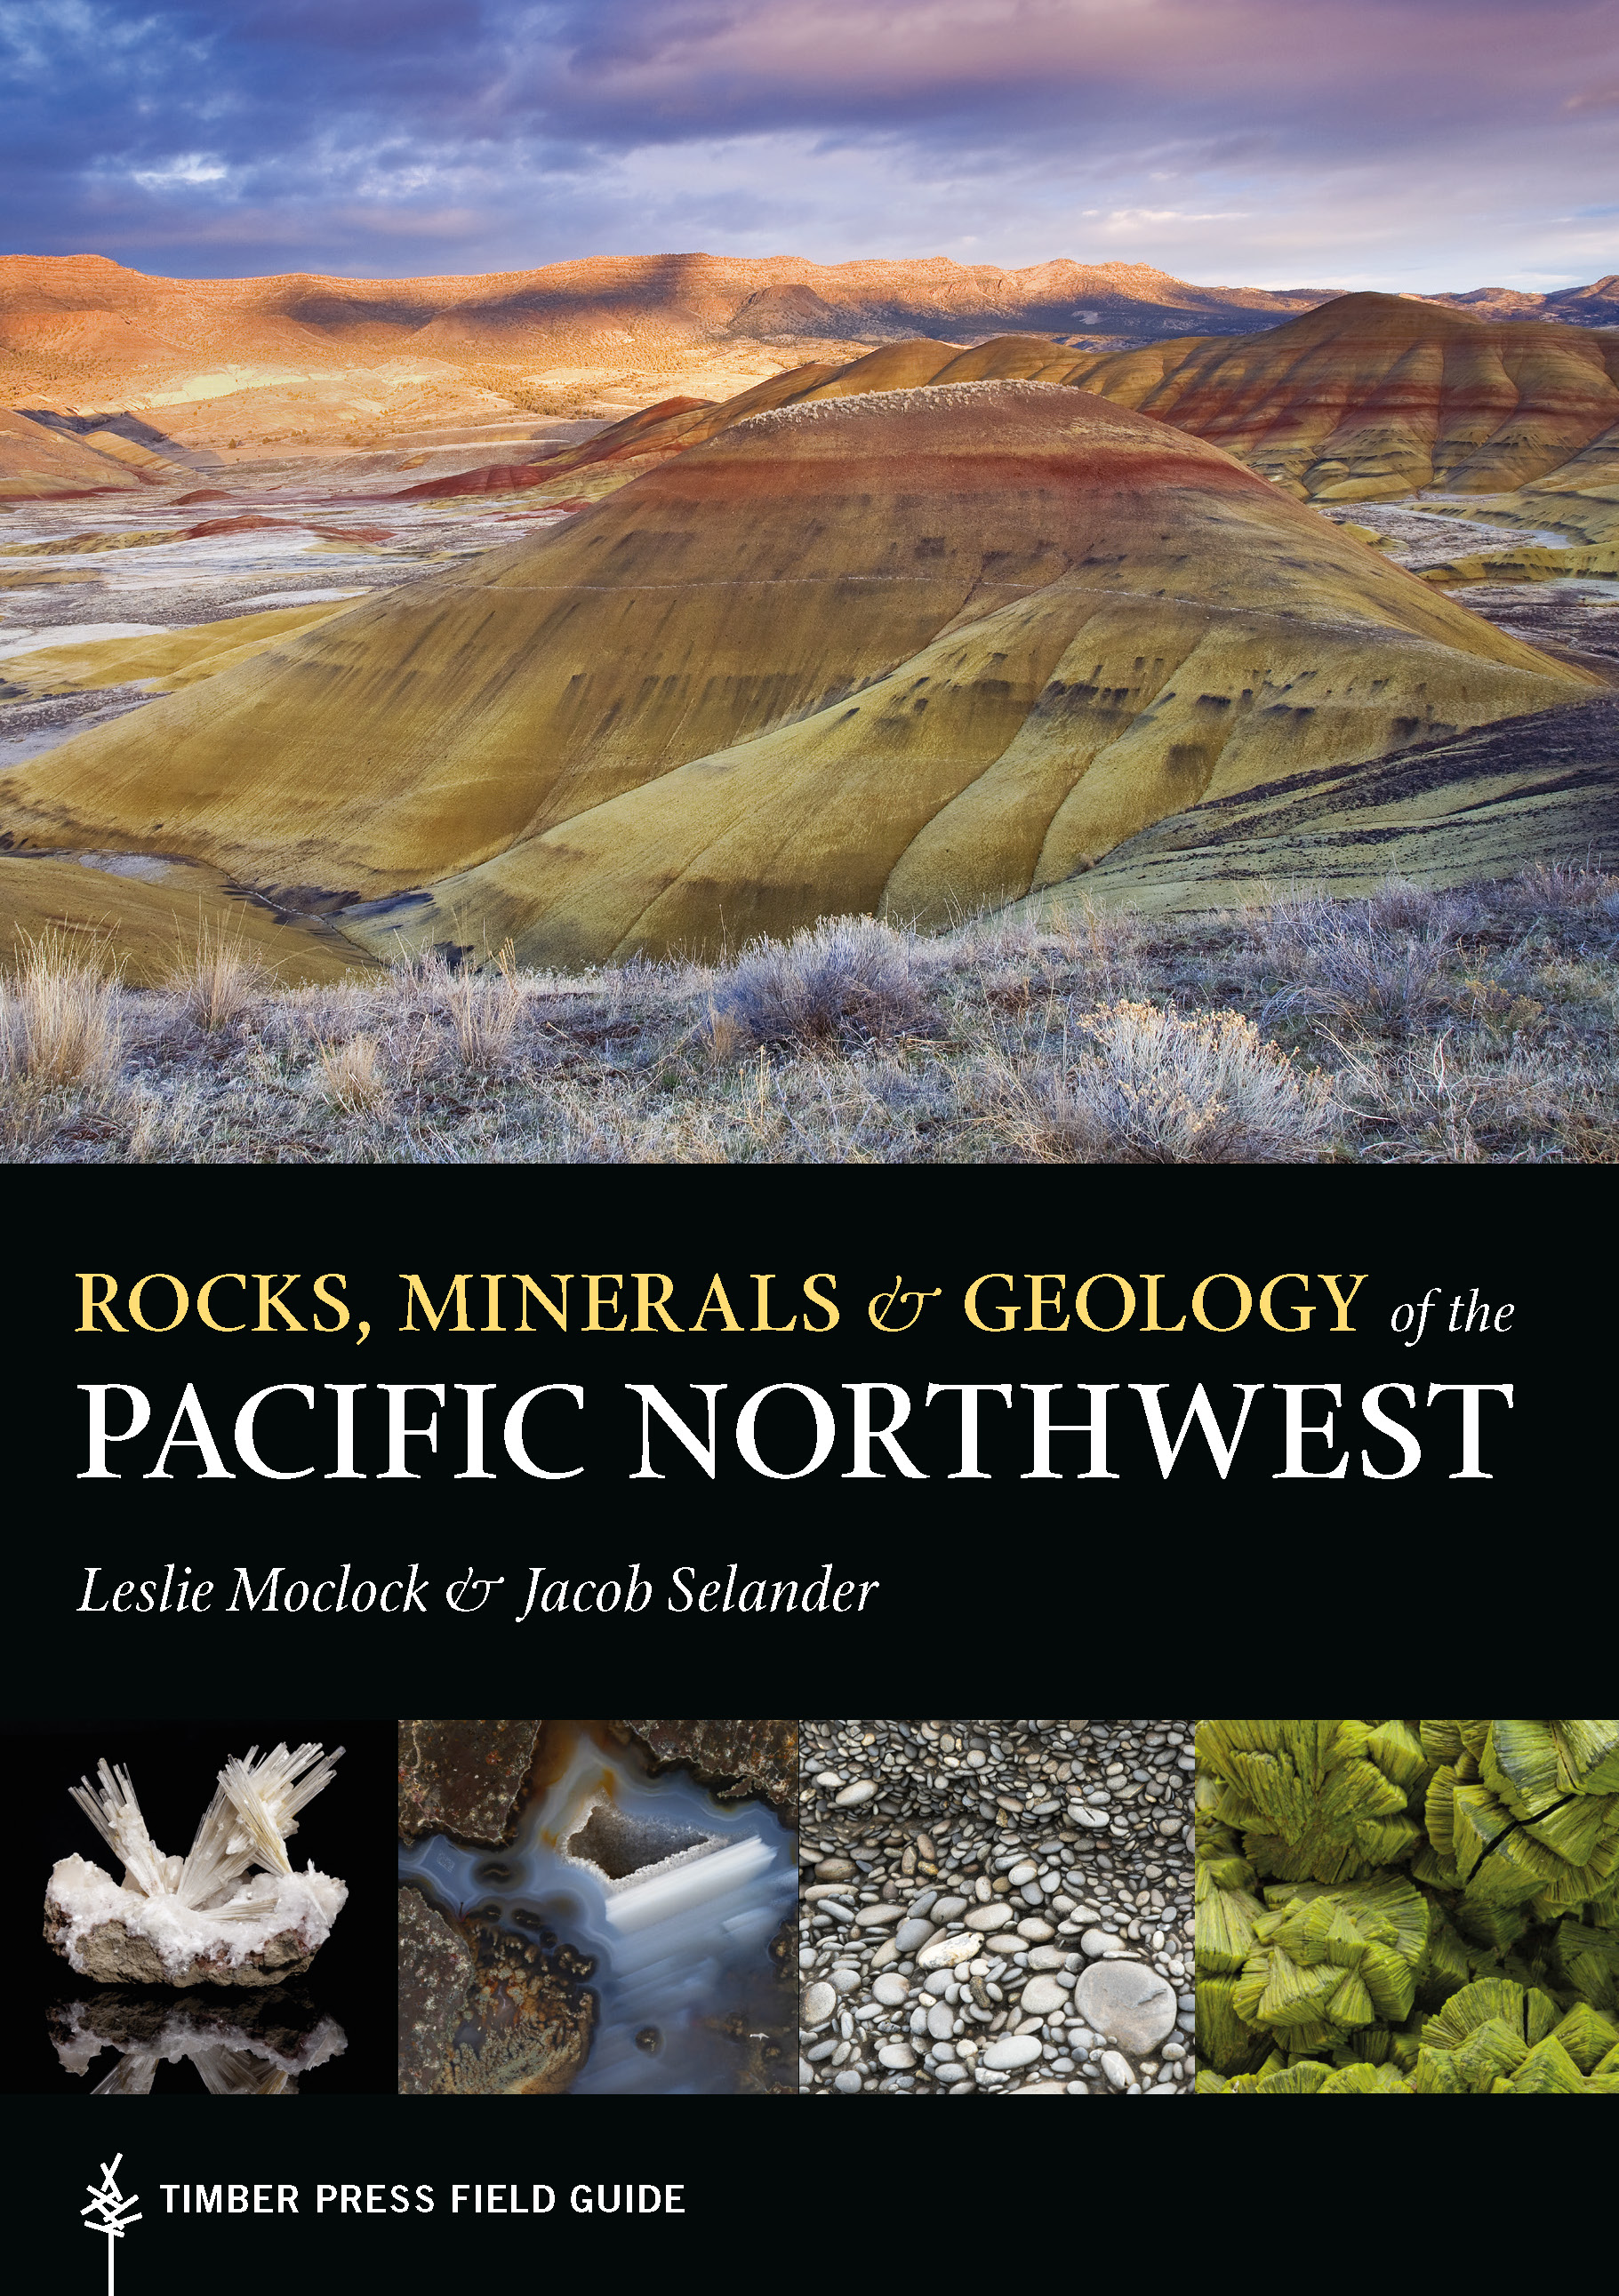 Rocks, Minerals, and Geology of the Pacific Northwest